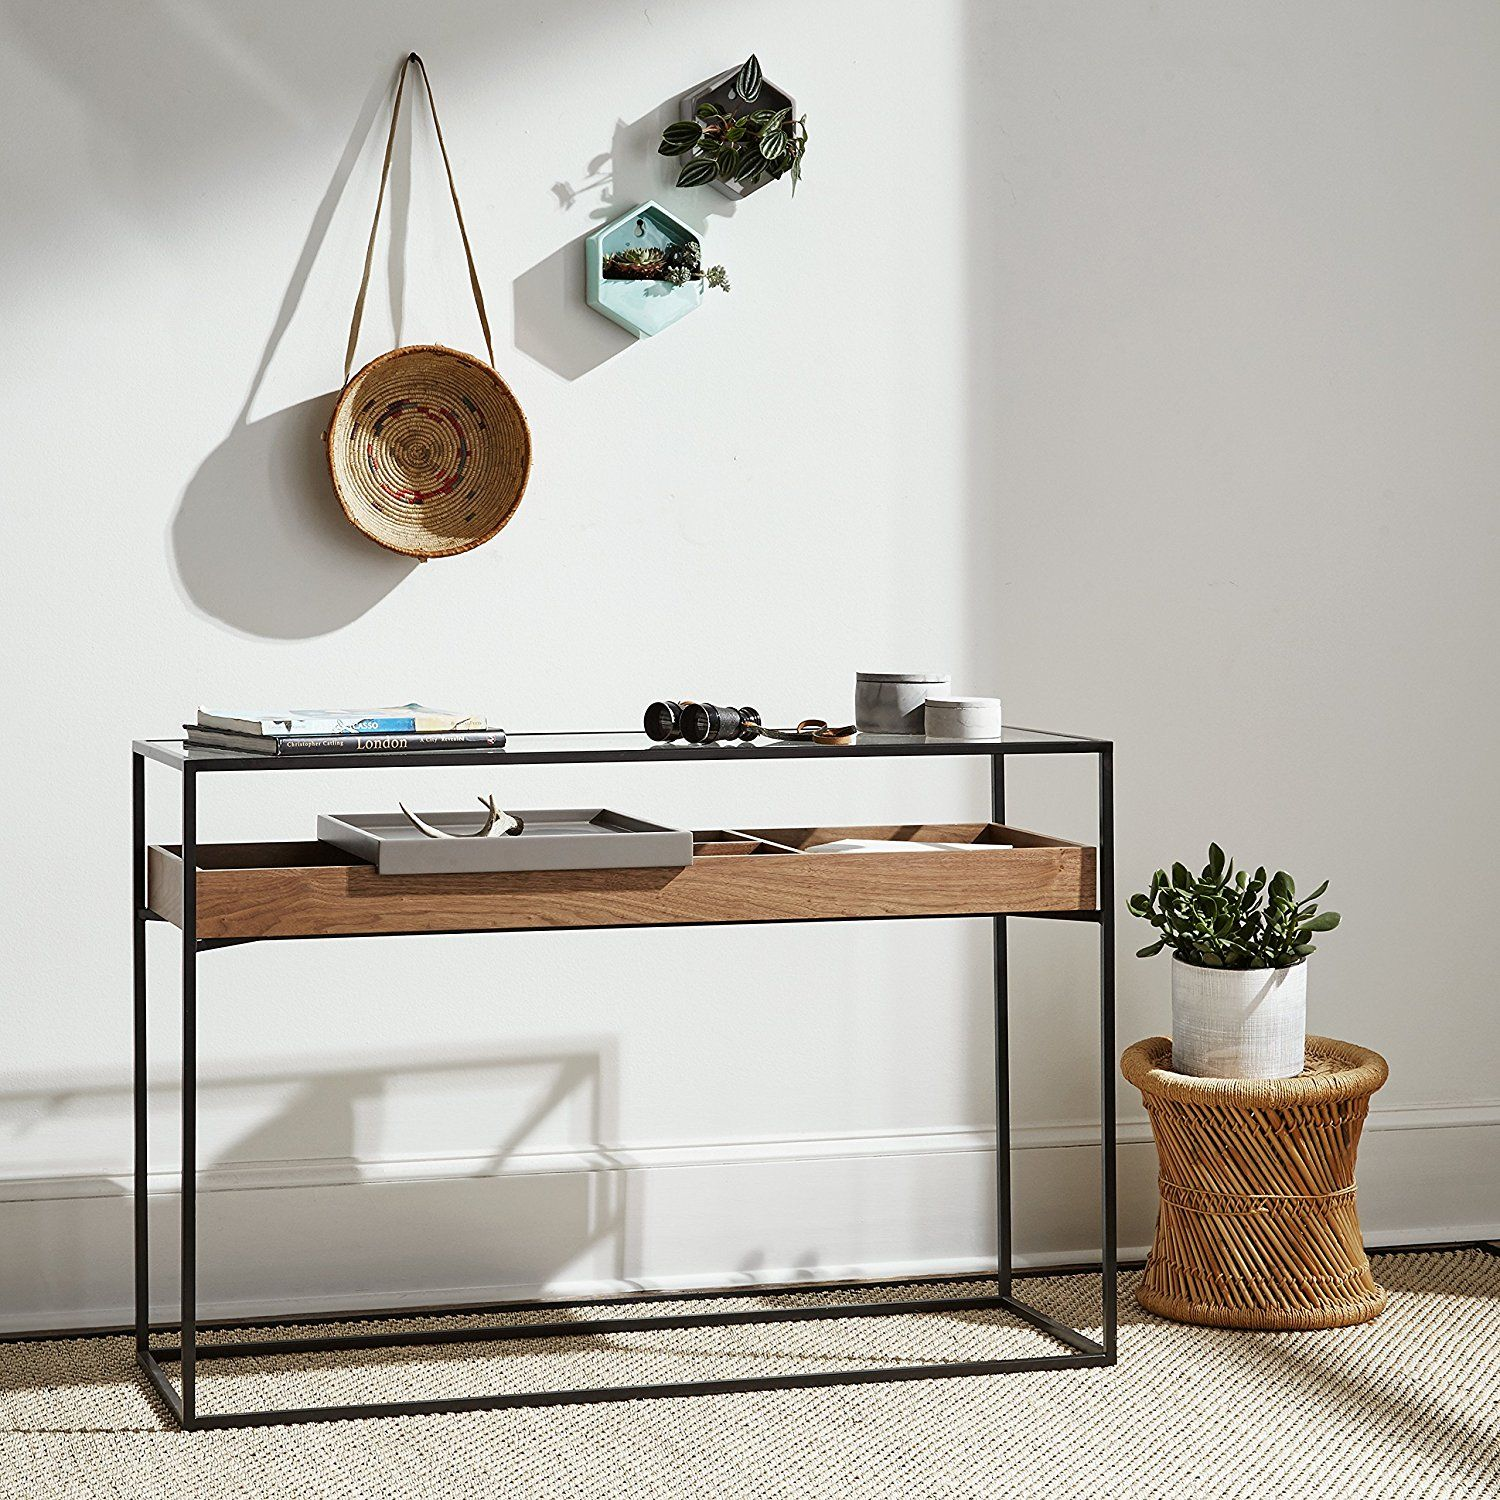 Kitchen Table King Street Amazon rivet king street industrial cabinet media console table amazon rivet king street industrial cabinet media console table with functional storage workwithnaturefo